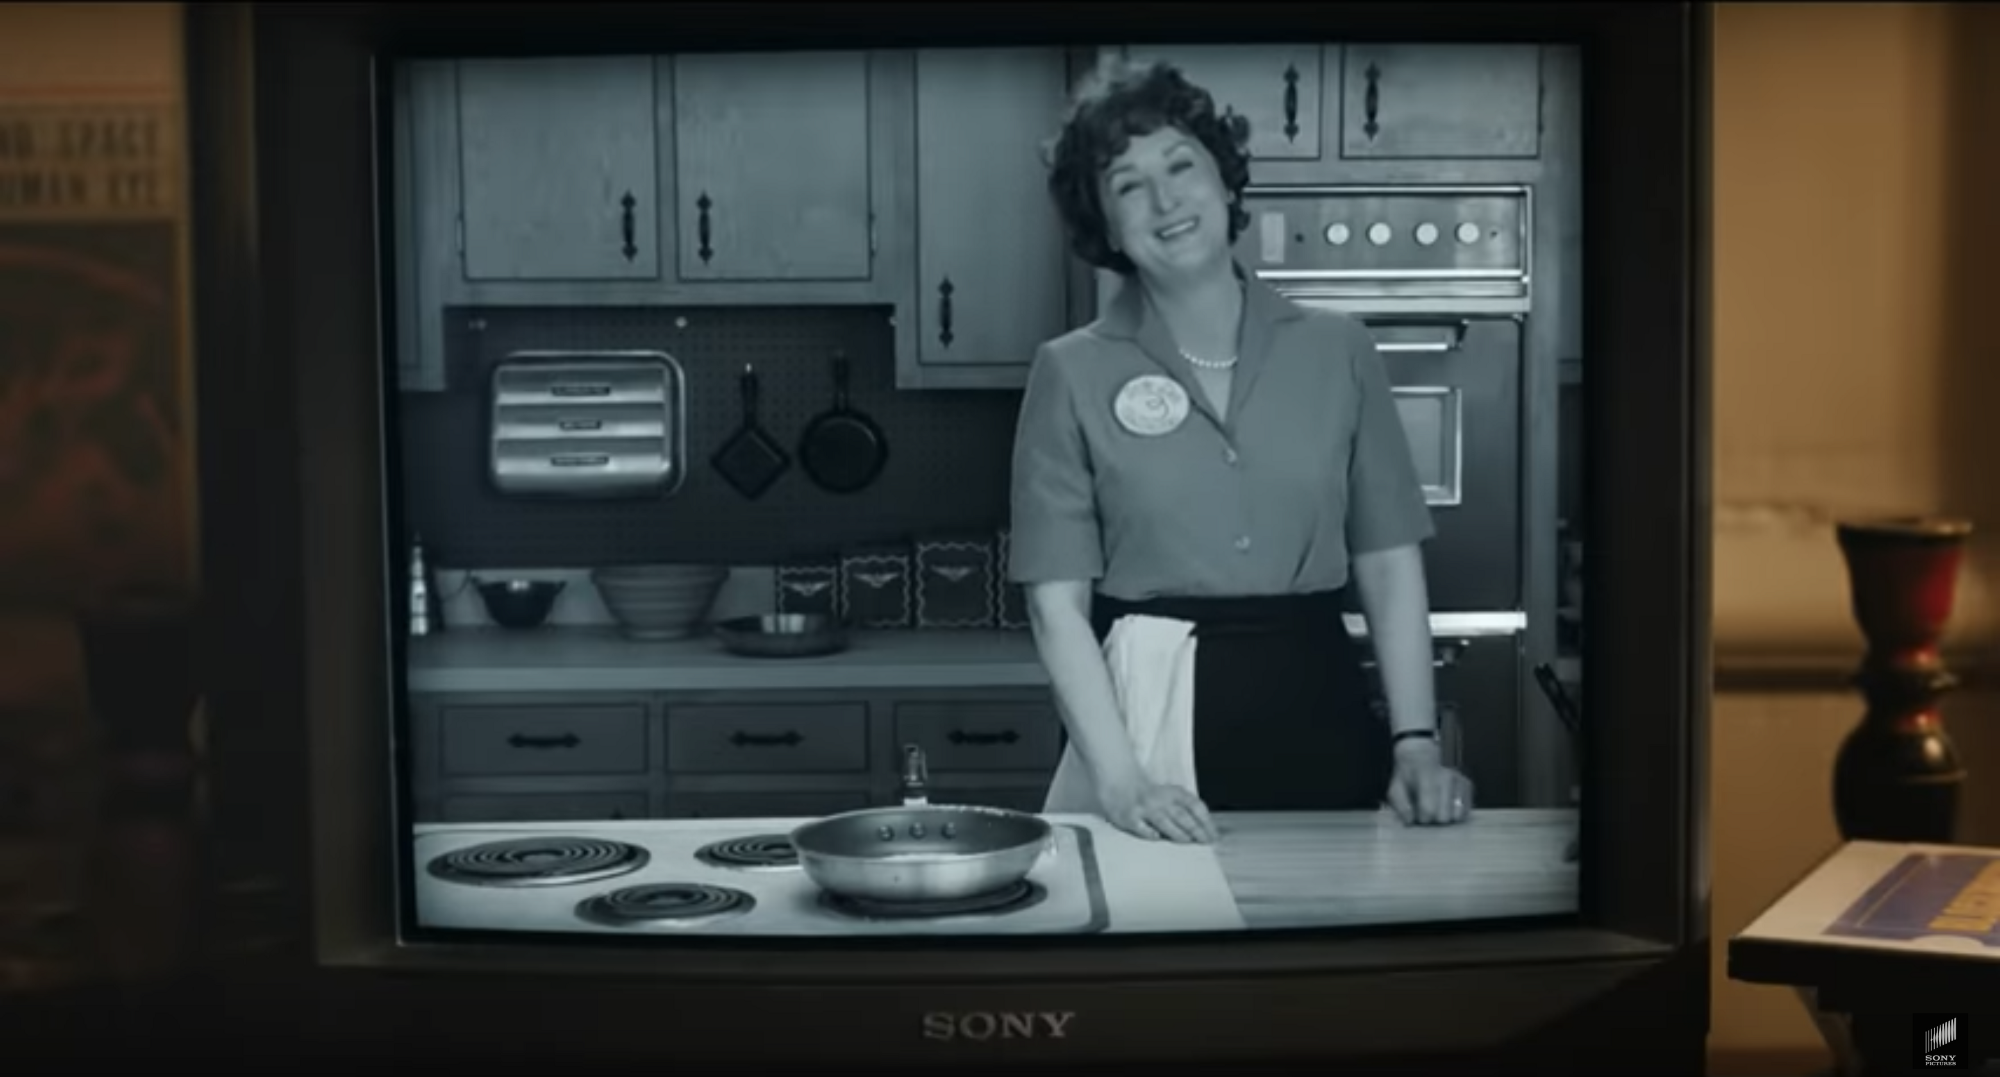 Meryl Streep as Julia Child on her cooking show, smiling in the kitchen